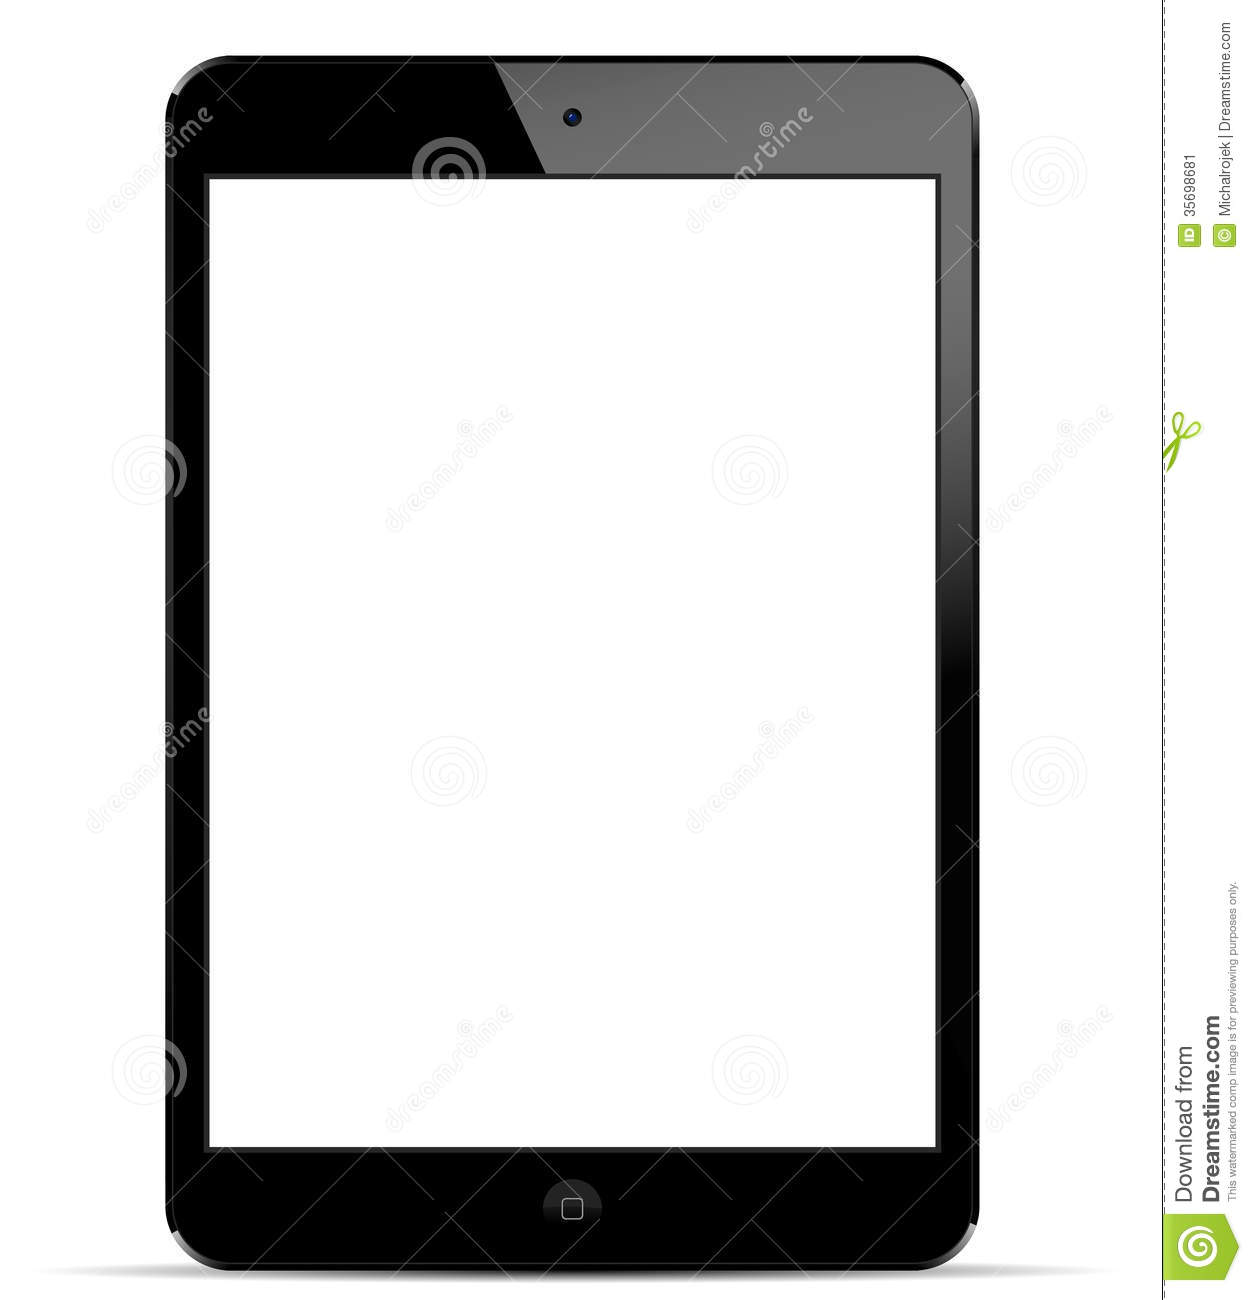 background of the apple ipad information technology essay Competition in the industry of information technology involved apple in a number of lawsuits in december 1989 for instance, the xerox corporation, in a $150 million lawsuit, charged apple with unlawfully using xerox technology for the macintosh software.